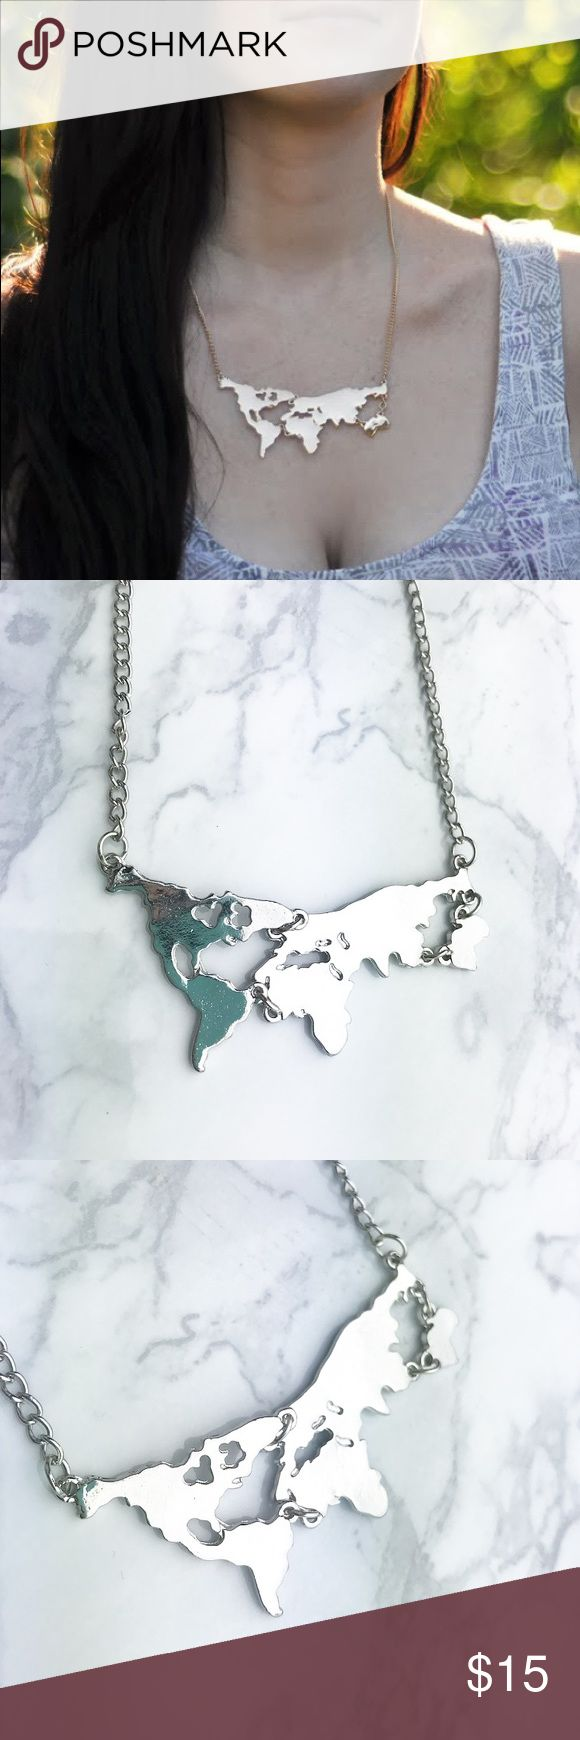 The 25 best world map necklace ideas on pinterest map necklace silver world map traveler necklace the perfect statement necklace for travel lovers show gumiabroncs Image collections